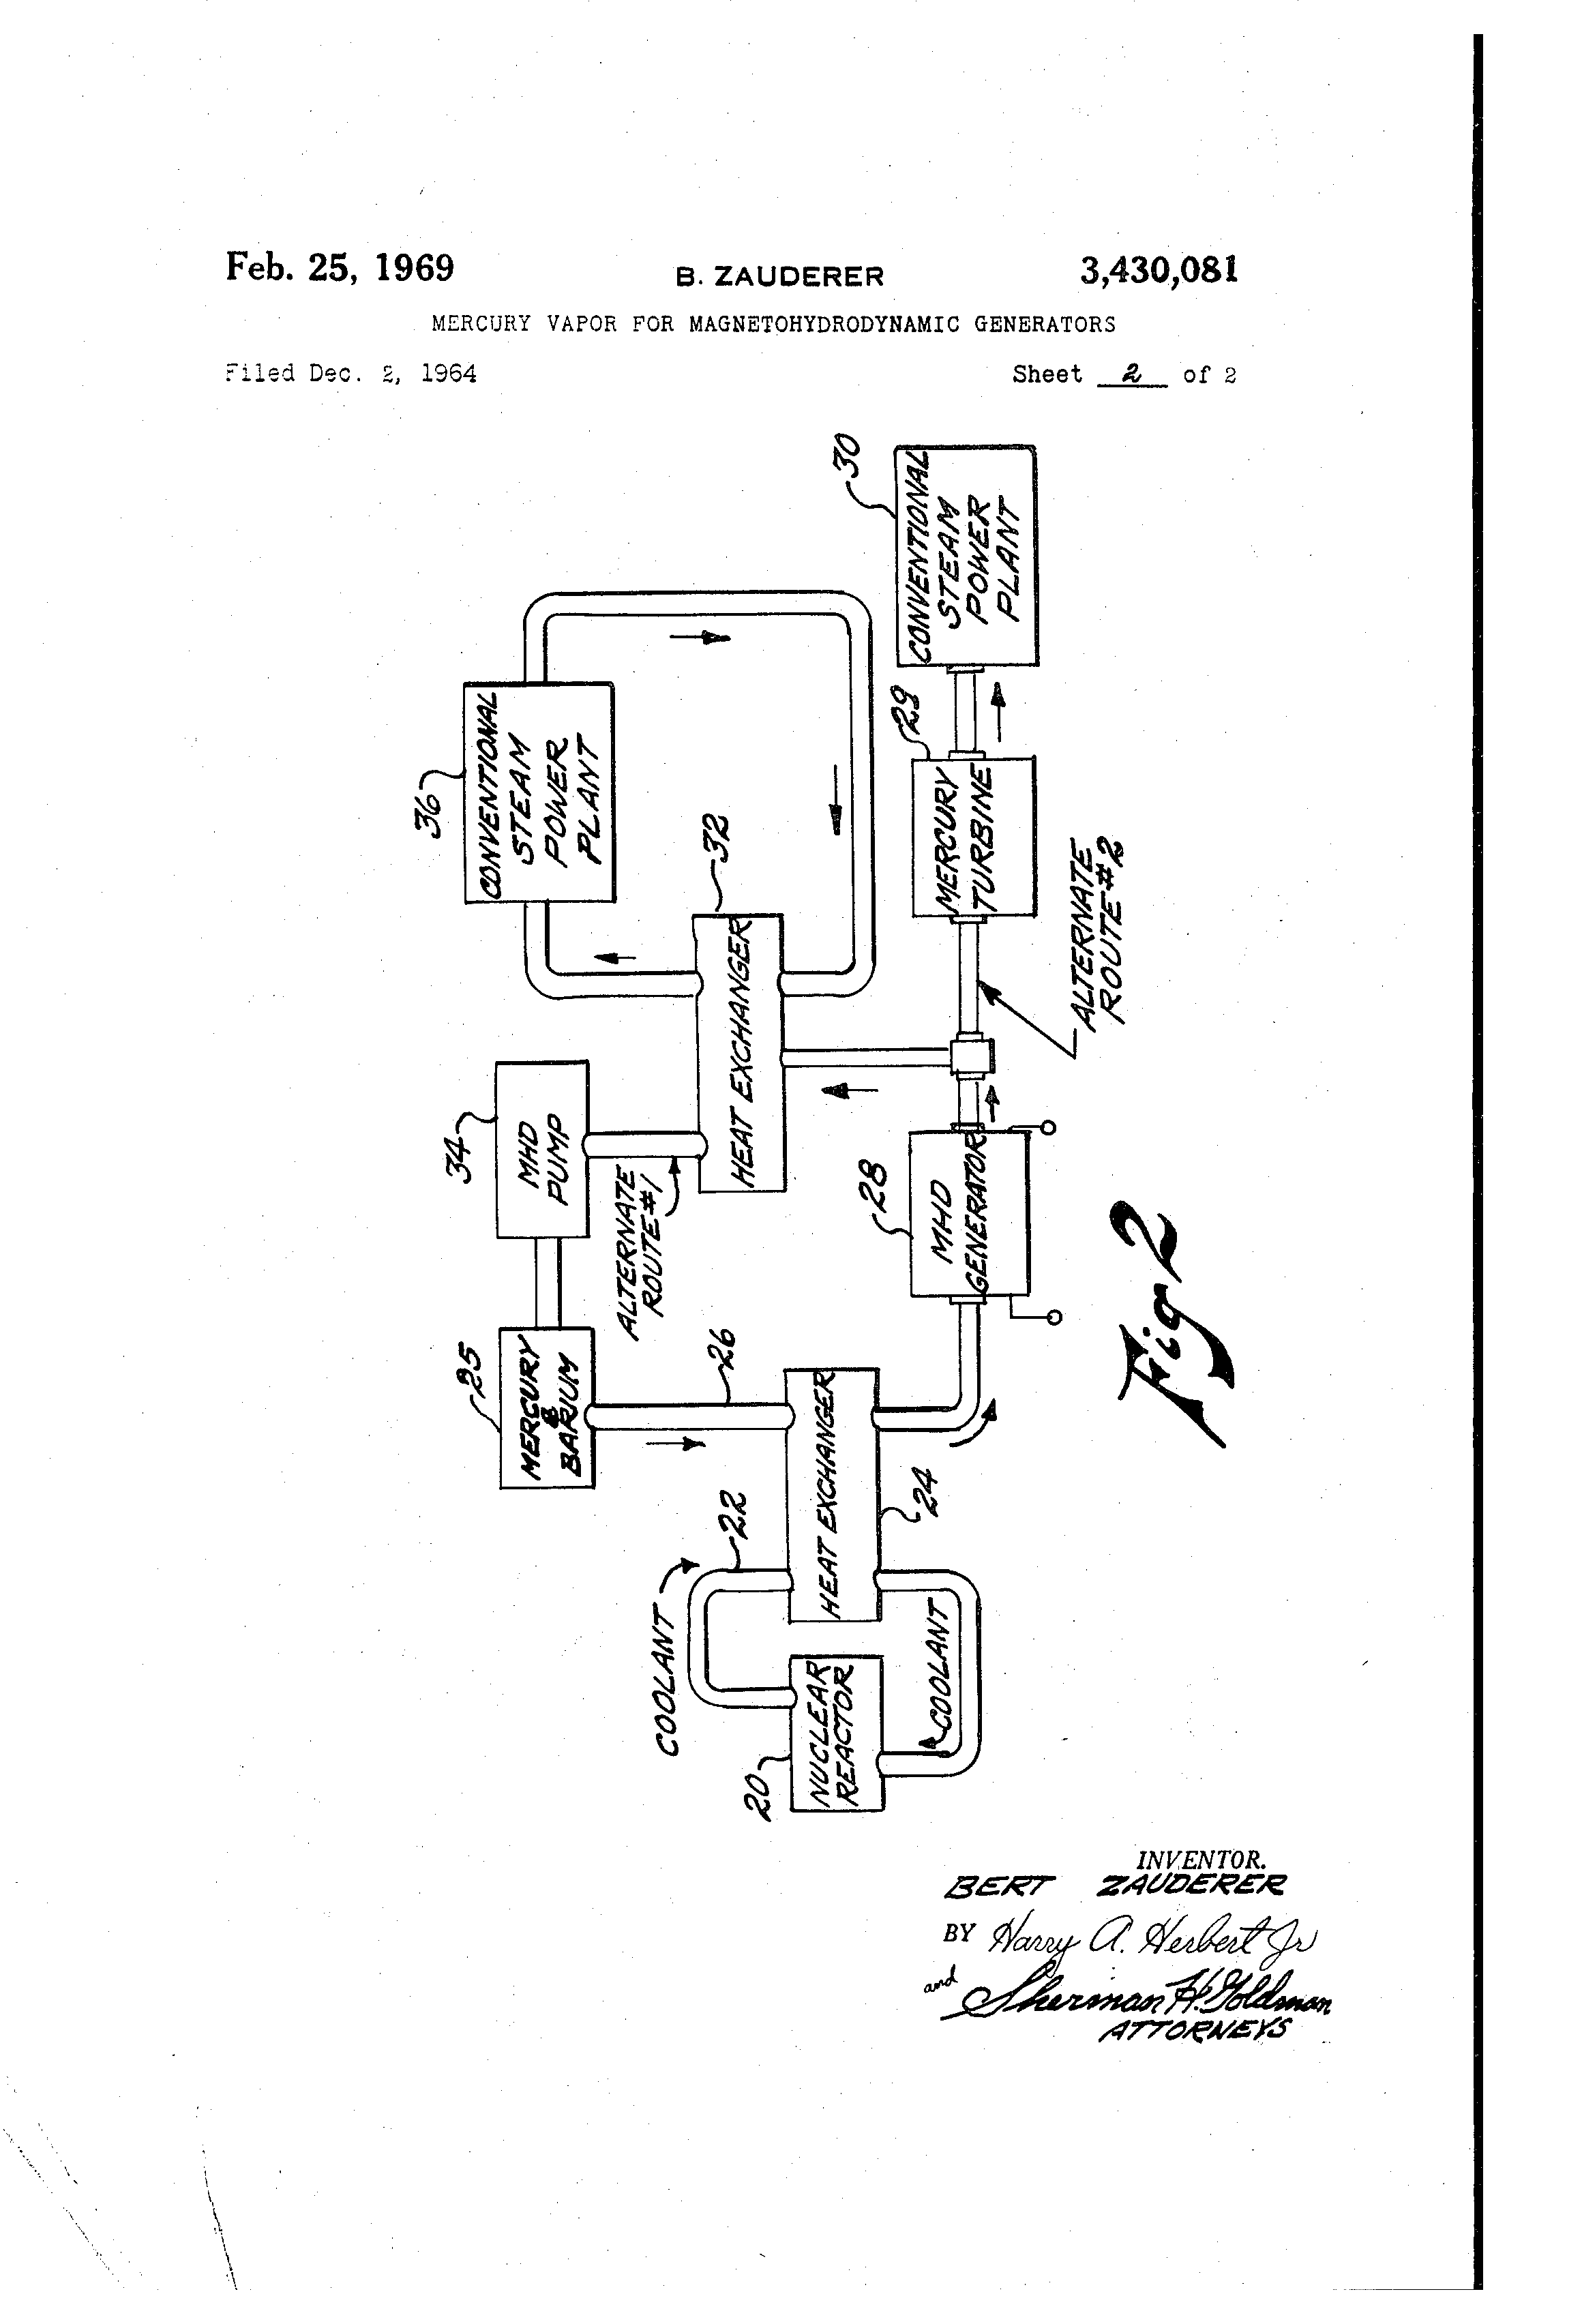 Patent US3430081 - Mercury vapor for magnetohydrodynamic